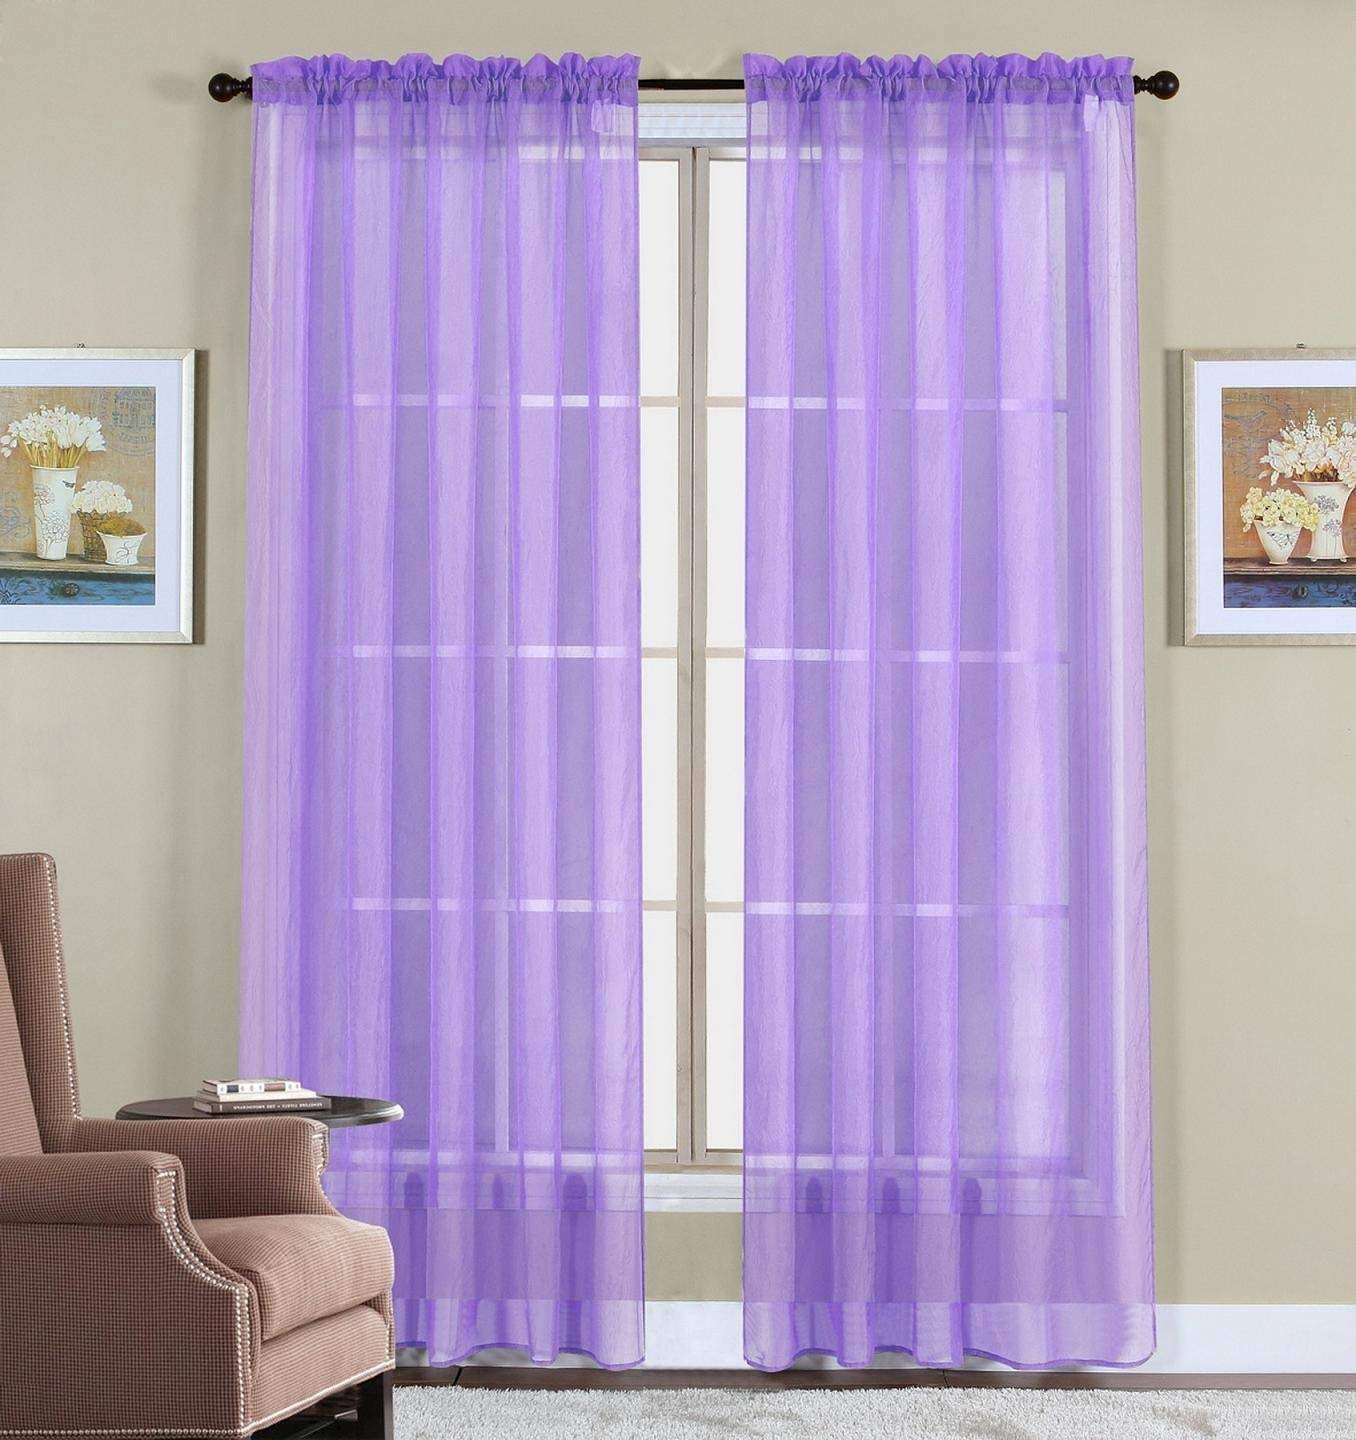 Lavender Sheer Curtains 63 Inch Long Sheer Window Curtains Lavender Purple World